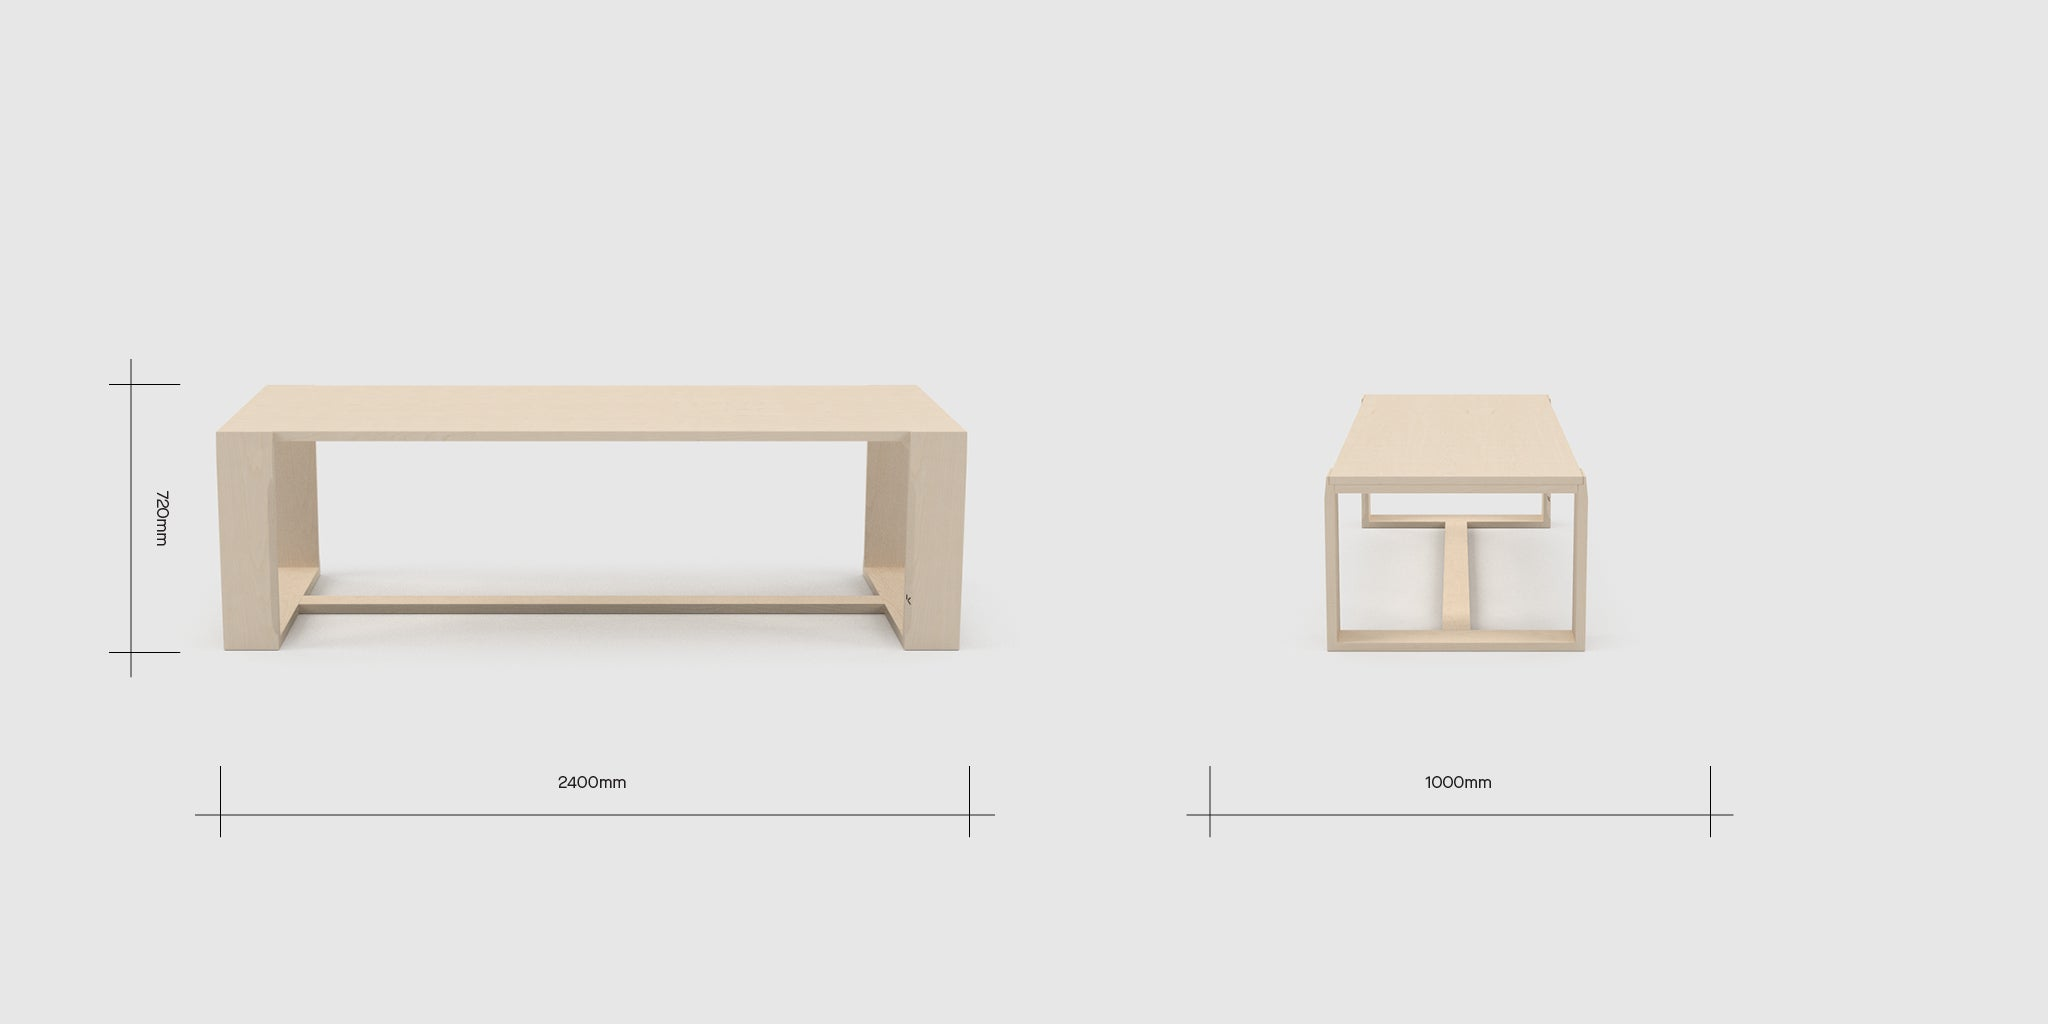 HB 6 Person Table Dimensions